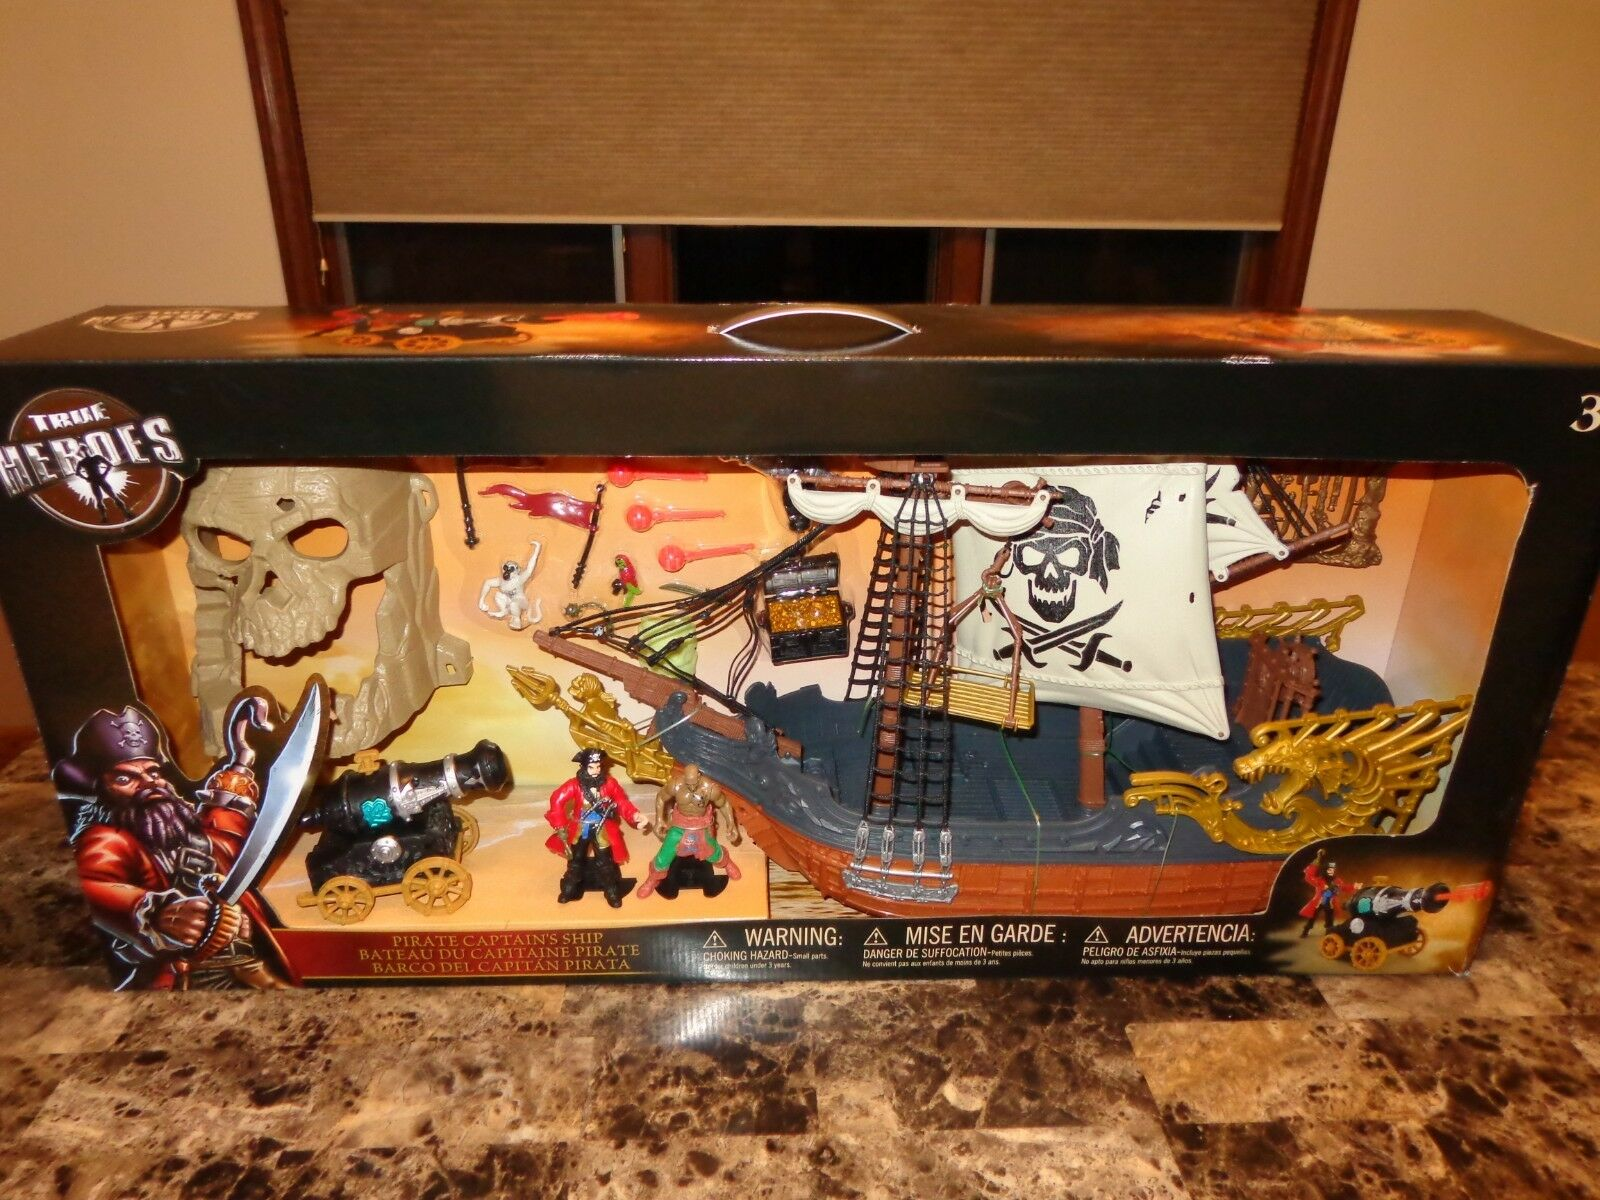 True Heroes Rare Pirate Captain Ship Playset Toy Set Toy's R Us Exclusive NEW